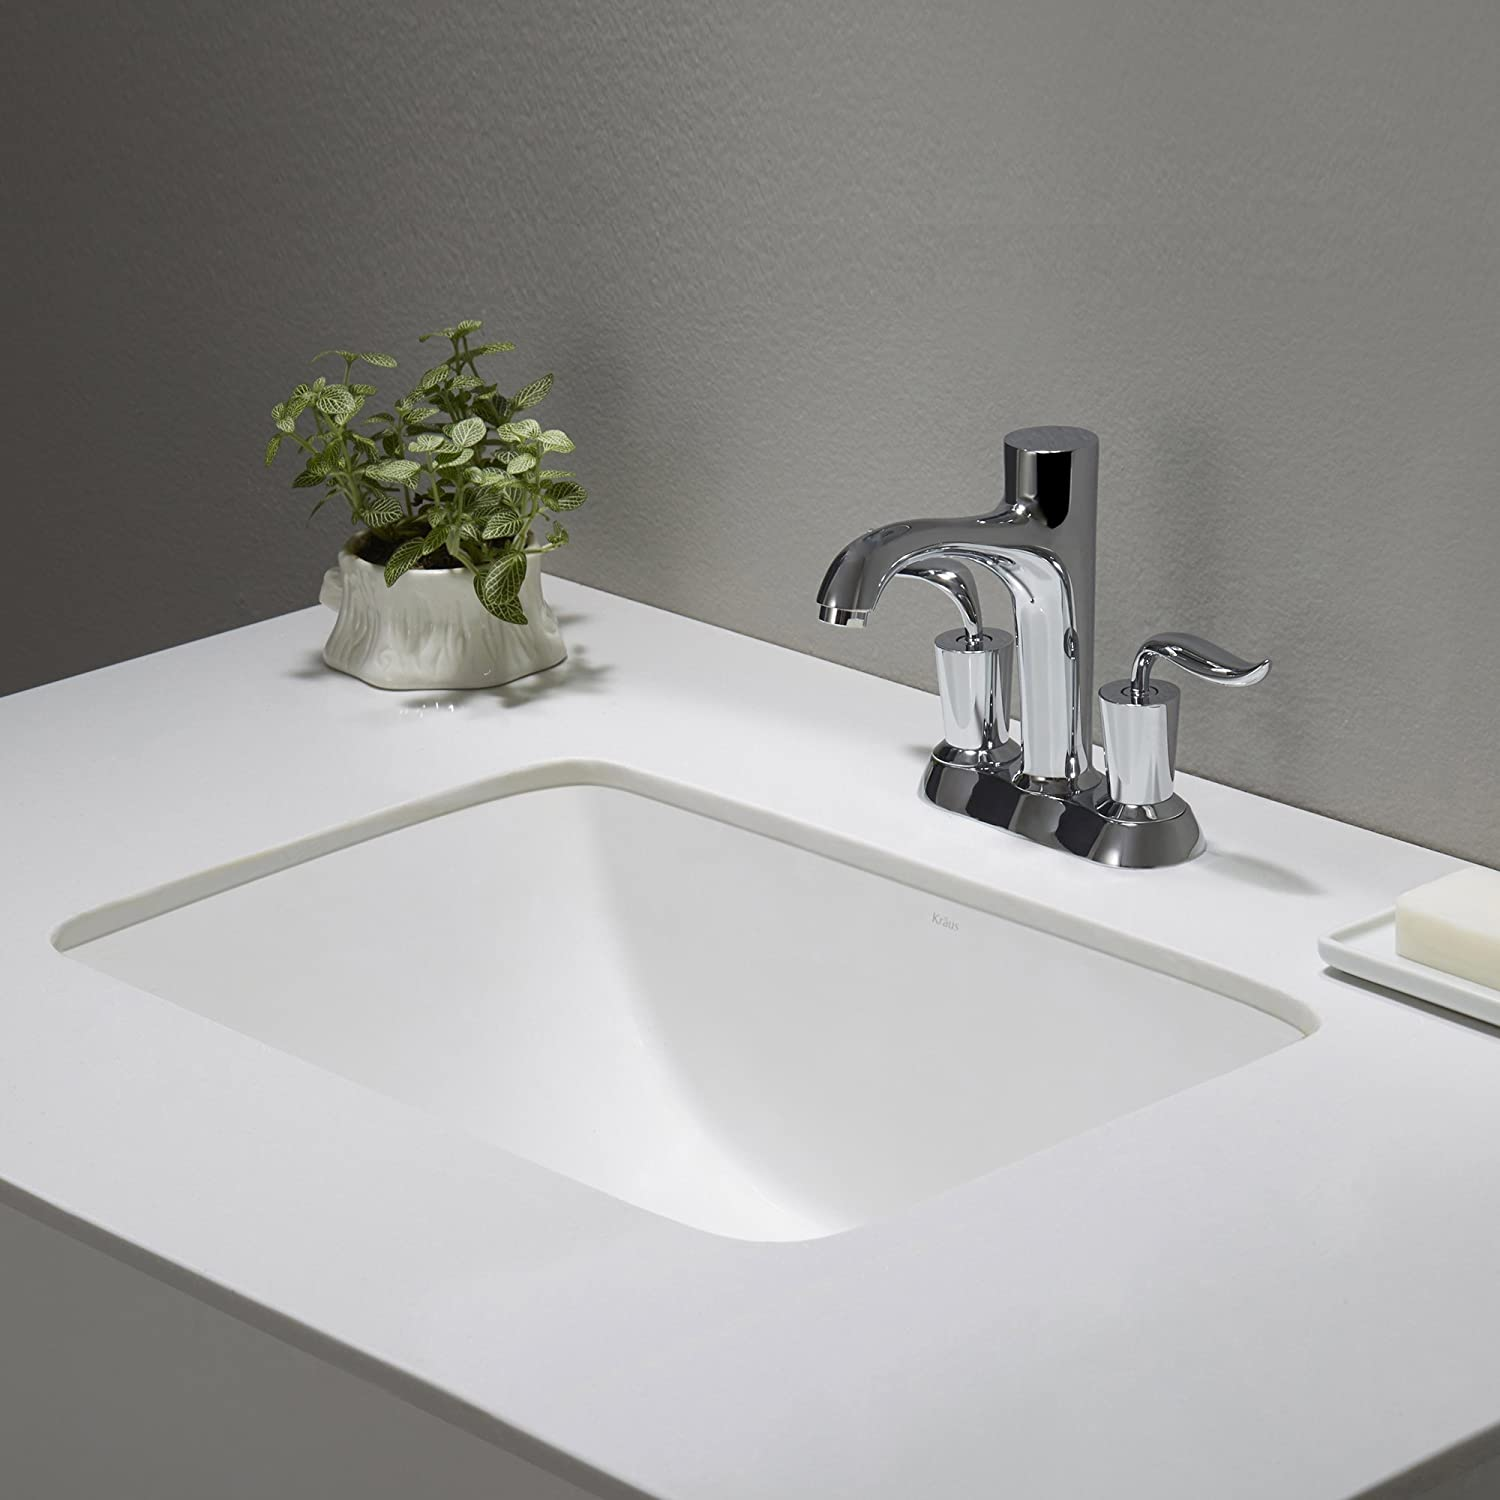 Kraus KCU 241 Elavo Ceramic Small Rectangular Undermount Bathroom Sink With  Overflow, White     Amazon.com